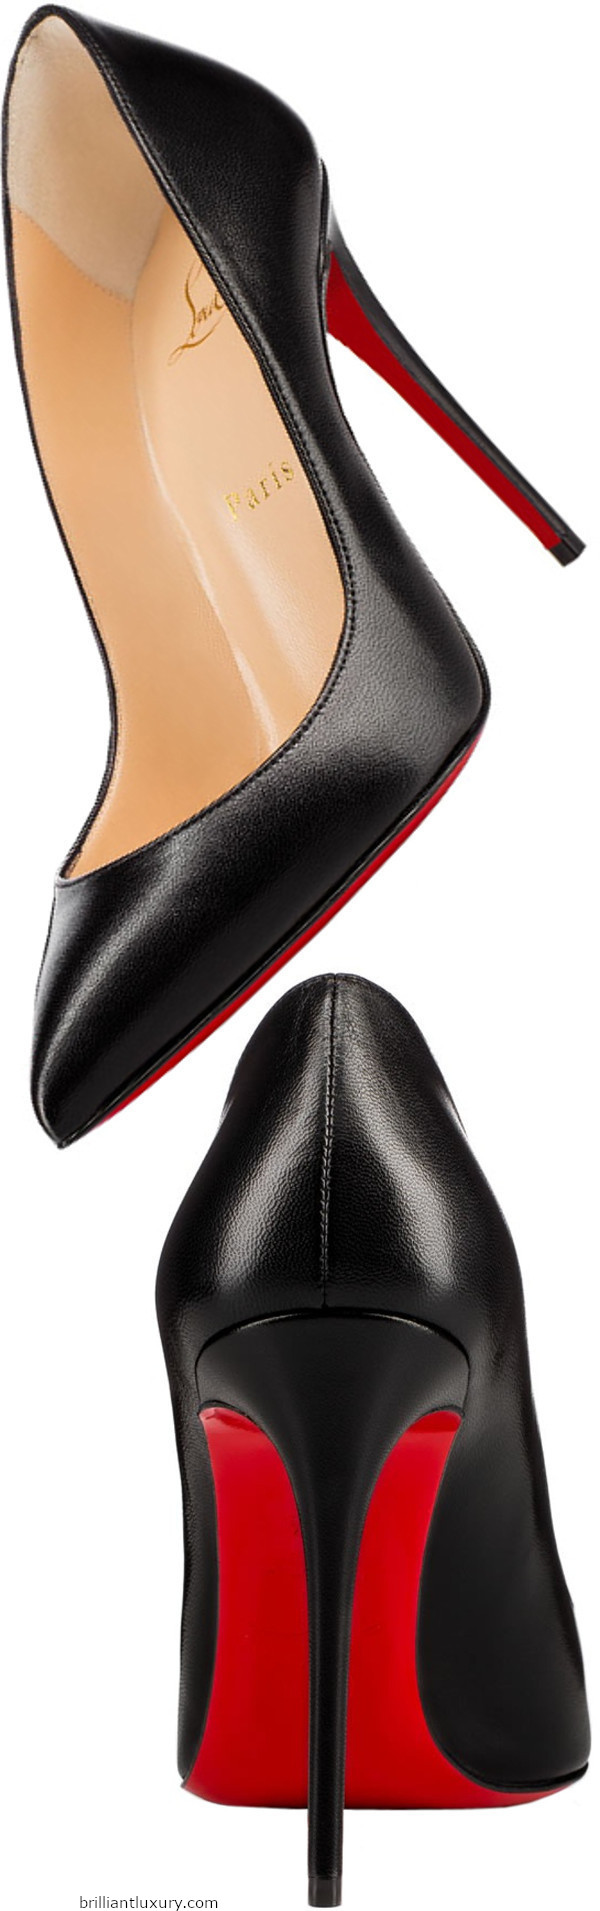 Pigalle Follies nappa leather high heels